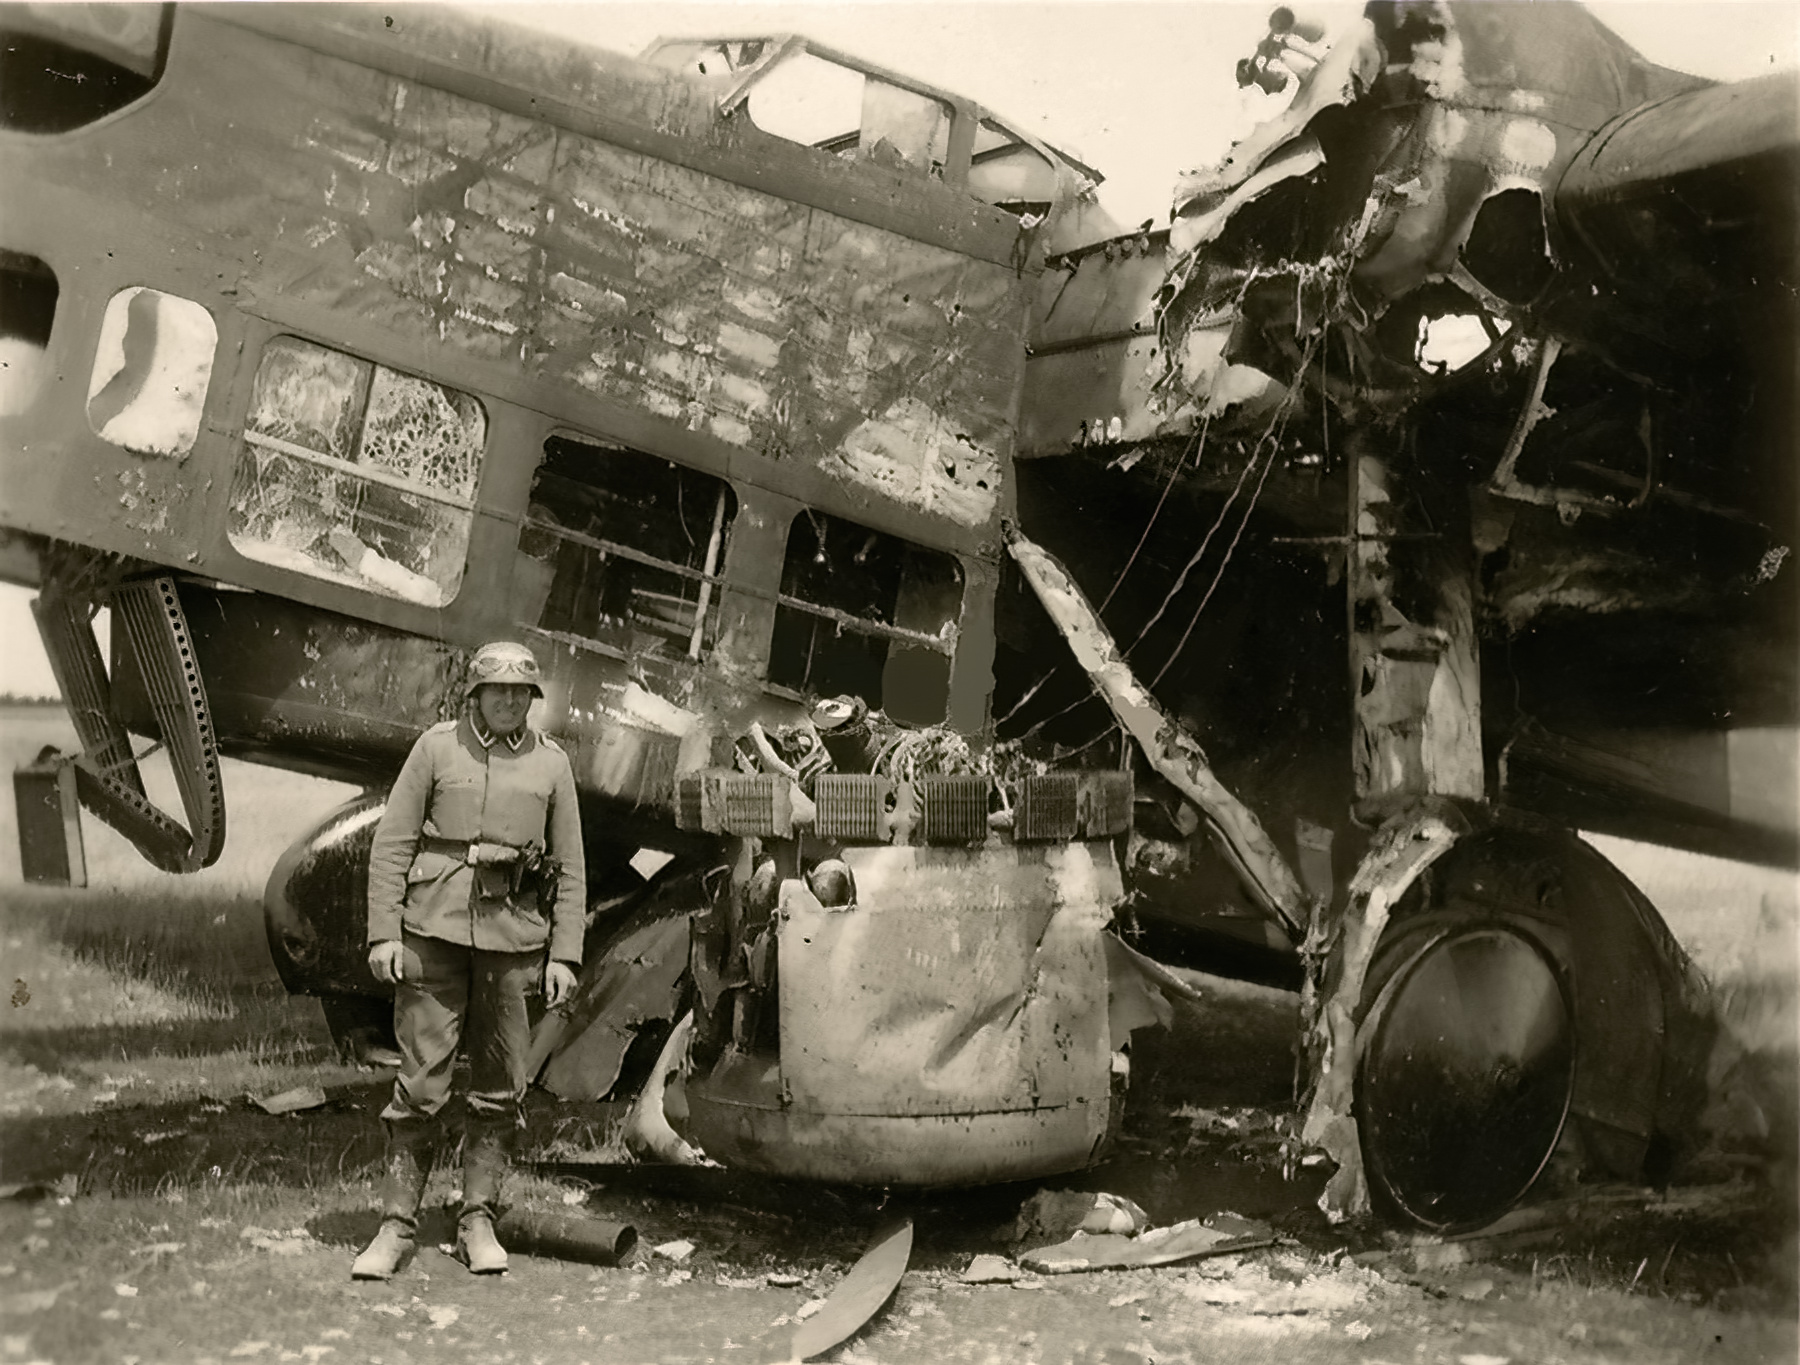 French Airforce Amiot 143 destroyed whilst grounded battle of France May Jun 1940 ebay 03